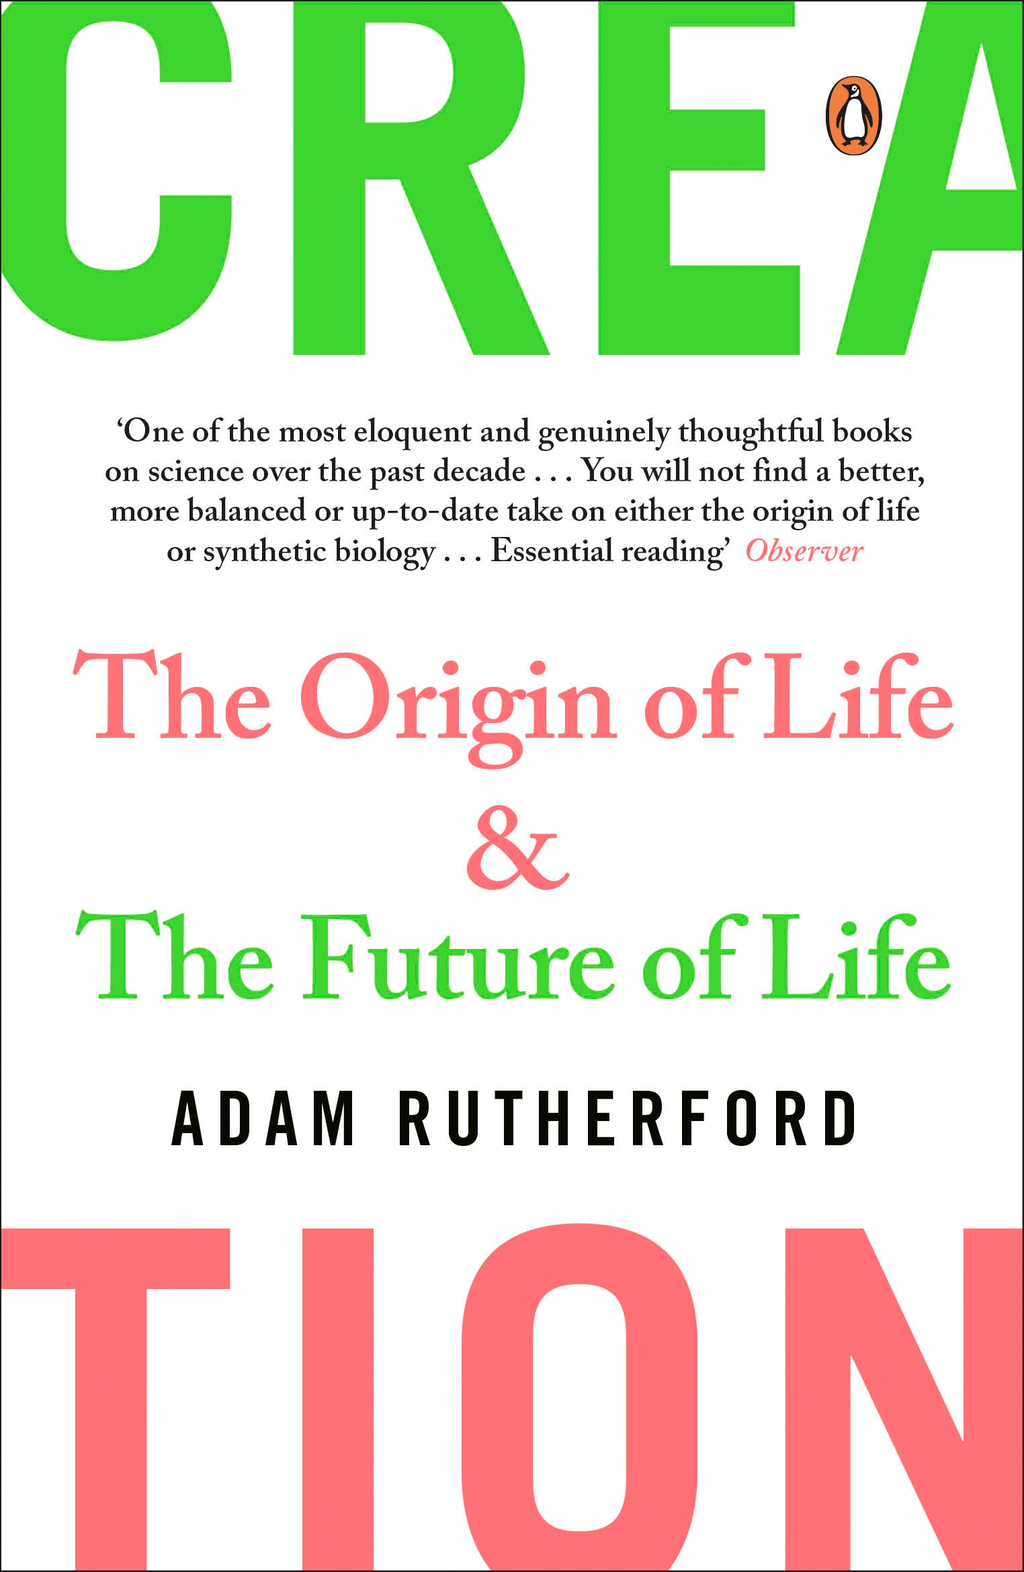 Creation The Origin of Life / The Future of Life